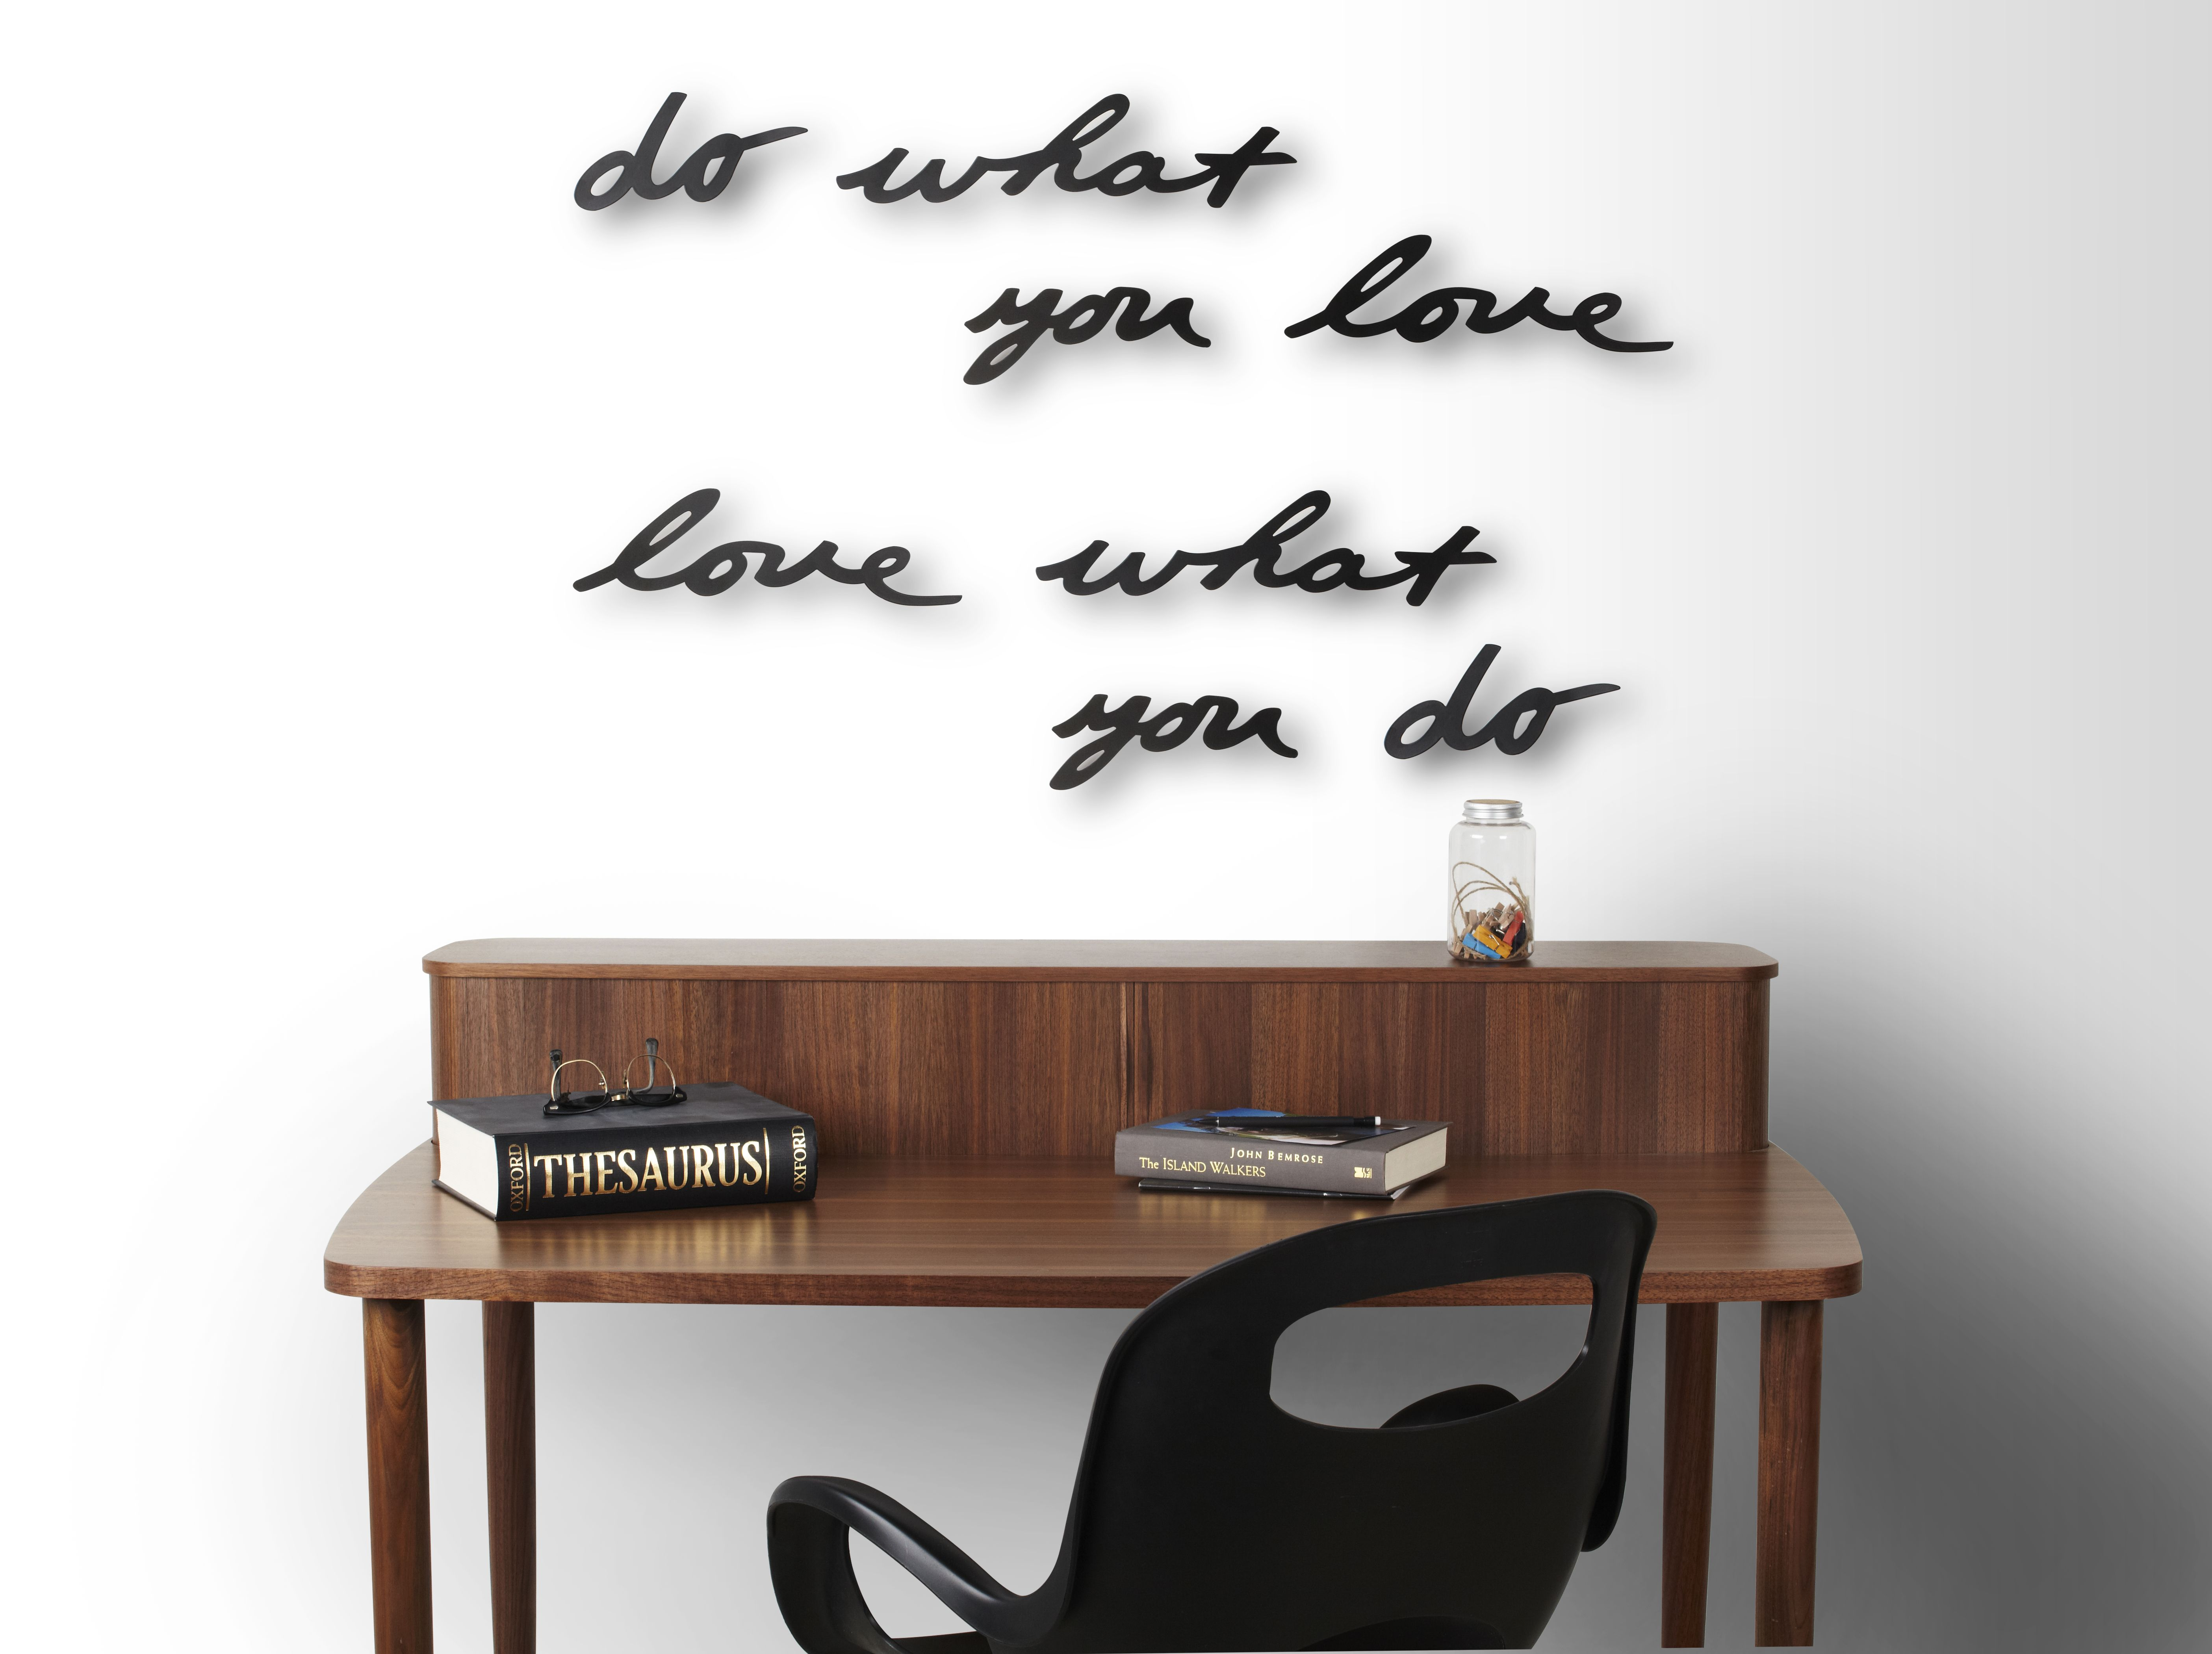 office wall hangings. Mantra WALL DECOR | The Perfect Inspiration In Your Office, Words Allow You To Recreate Meaning Of Meme As Wish. DESIGN By Alan Wisniewski Office Wall Hangings L